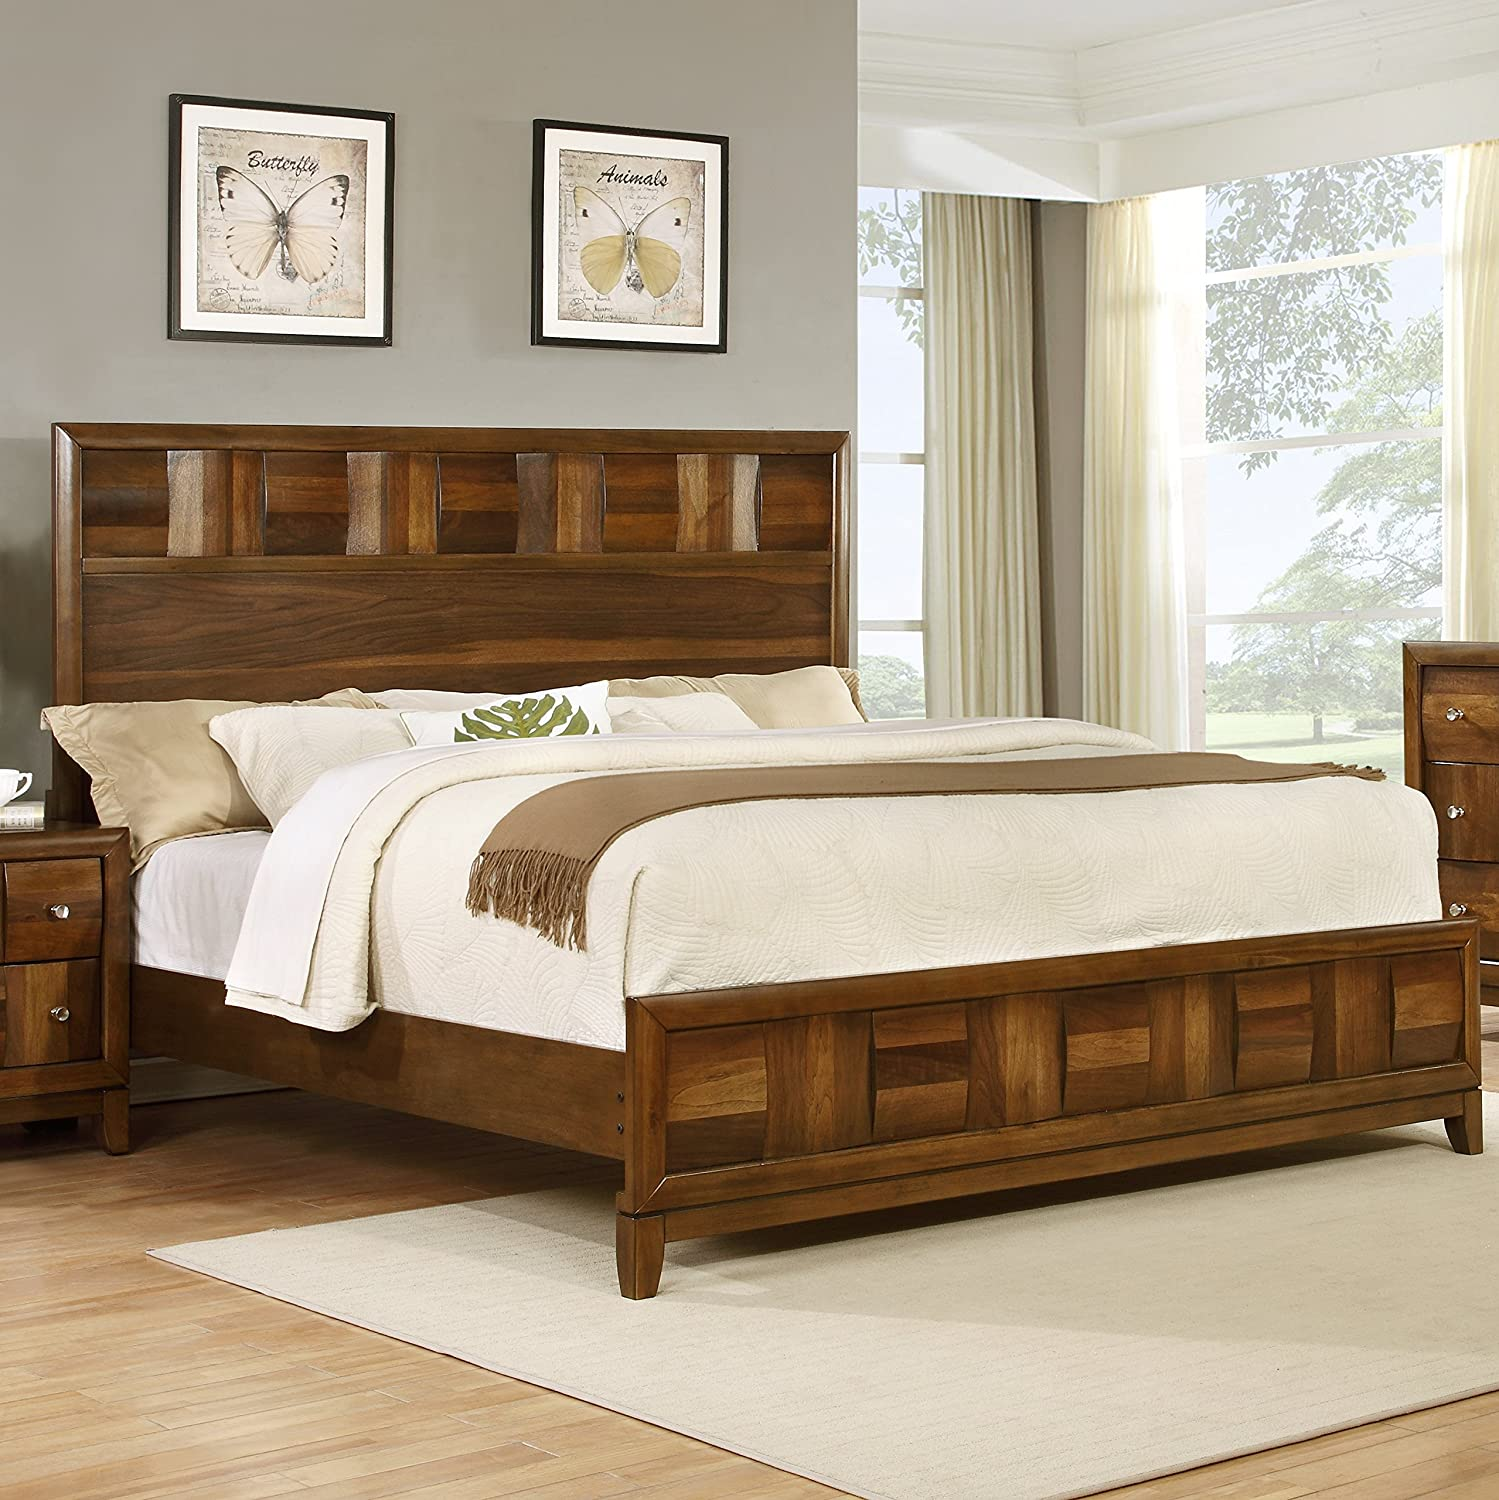 amazoncom roundhill furniture calais solid wood construction bedroom set with bed dresser mirror 2 night stands king walnut kitchen dining brown solid wood furniture